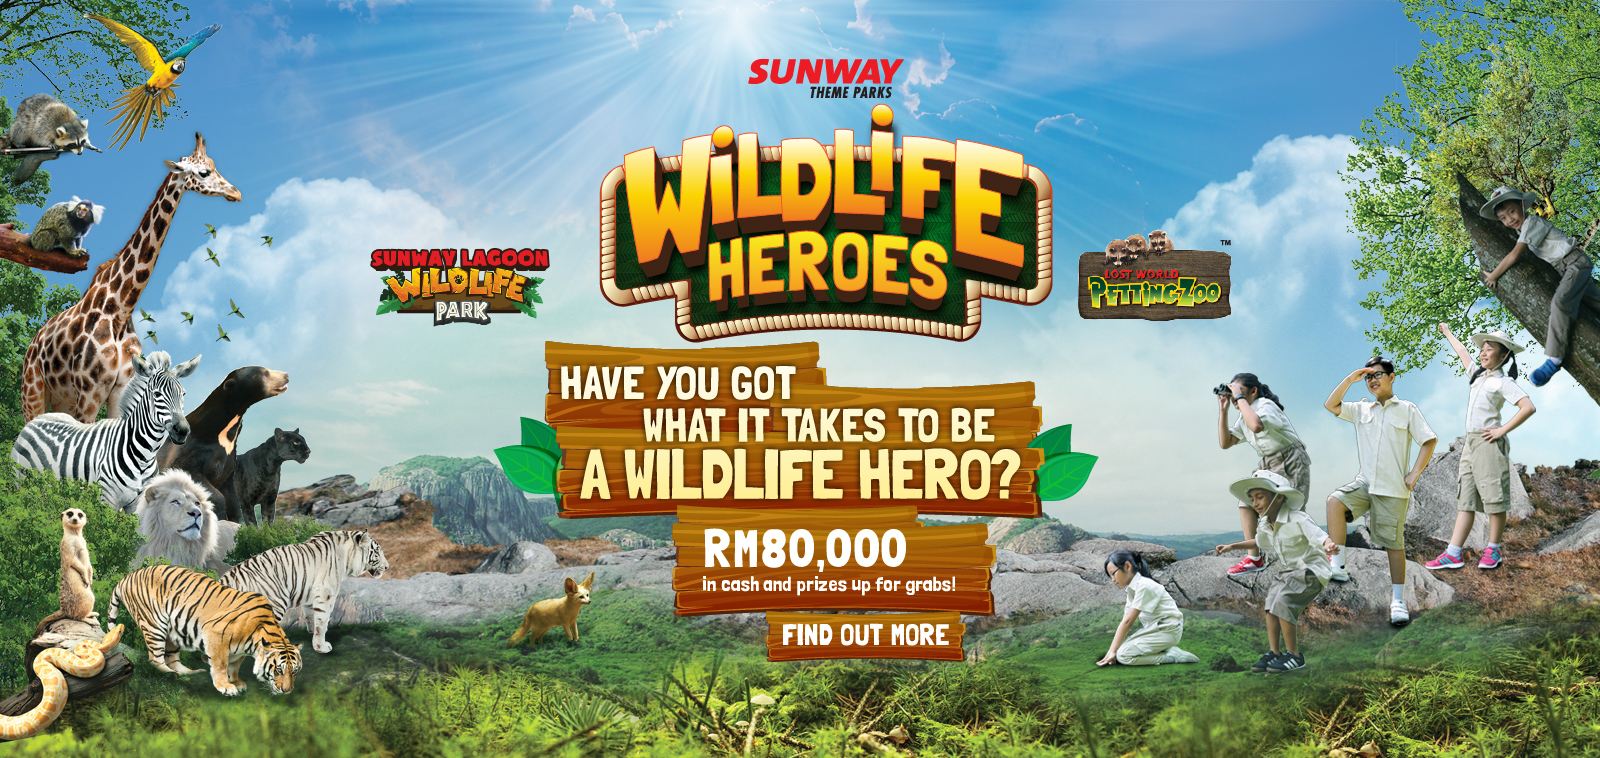 Wildlife Heroes Video Submission